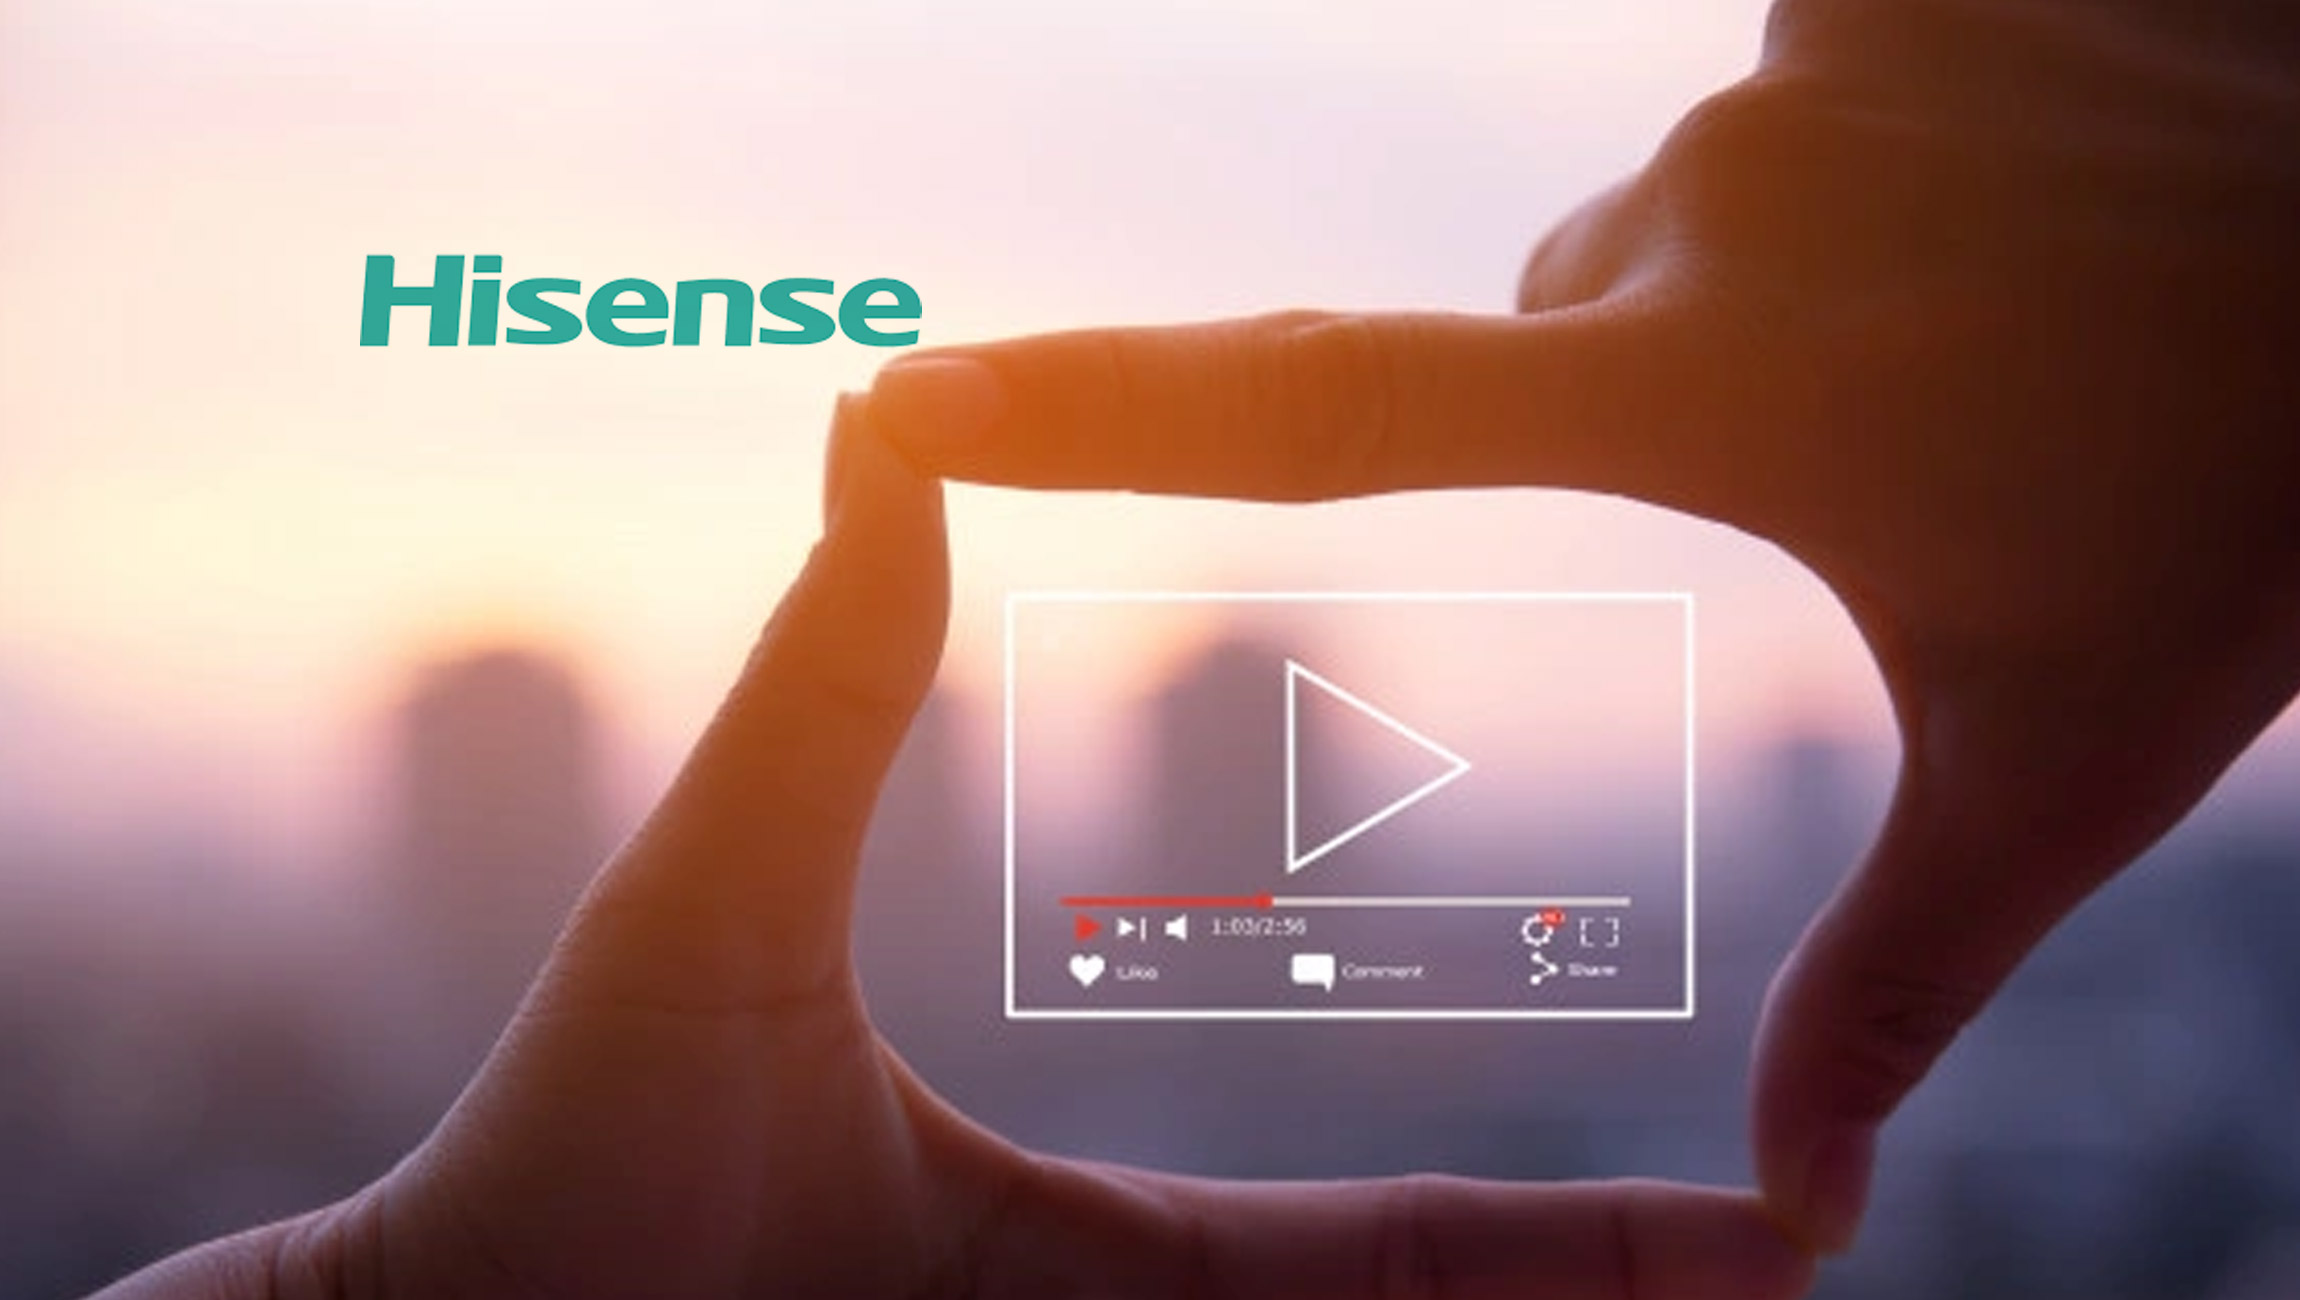 Hisense-Laser-TV-Seeing-Explosive-Growth_-Global-Sales-of-Laser-TVs-Surge-Over-600%-YoY-from-January-to-August-2021